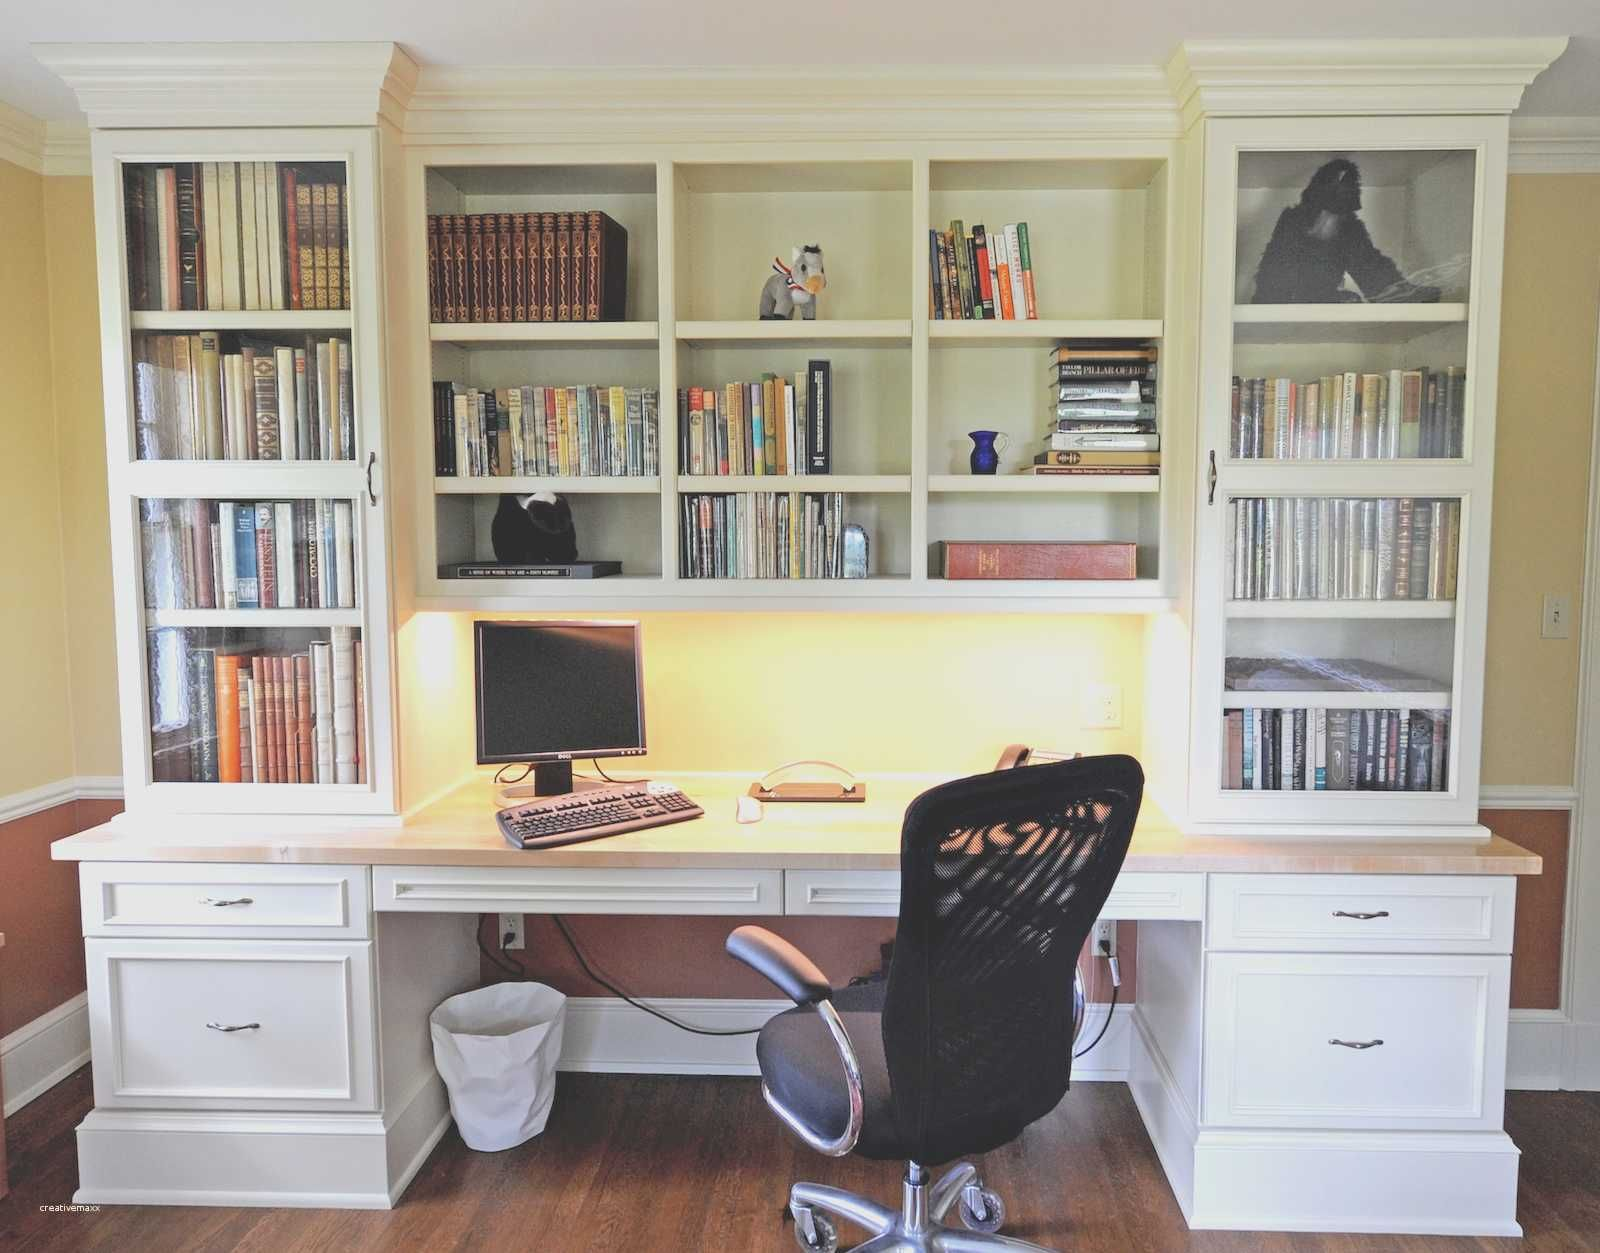 Office Built Ins Desk Bookcases Elegant Office Built Ins Desk Bookcases Wondrous Corner White Home Fice Desig Bookshelf Desk Office Built Ins Desk Wall Unit